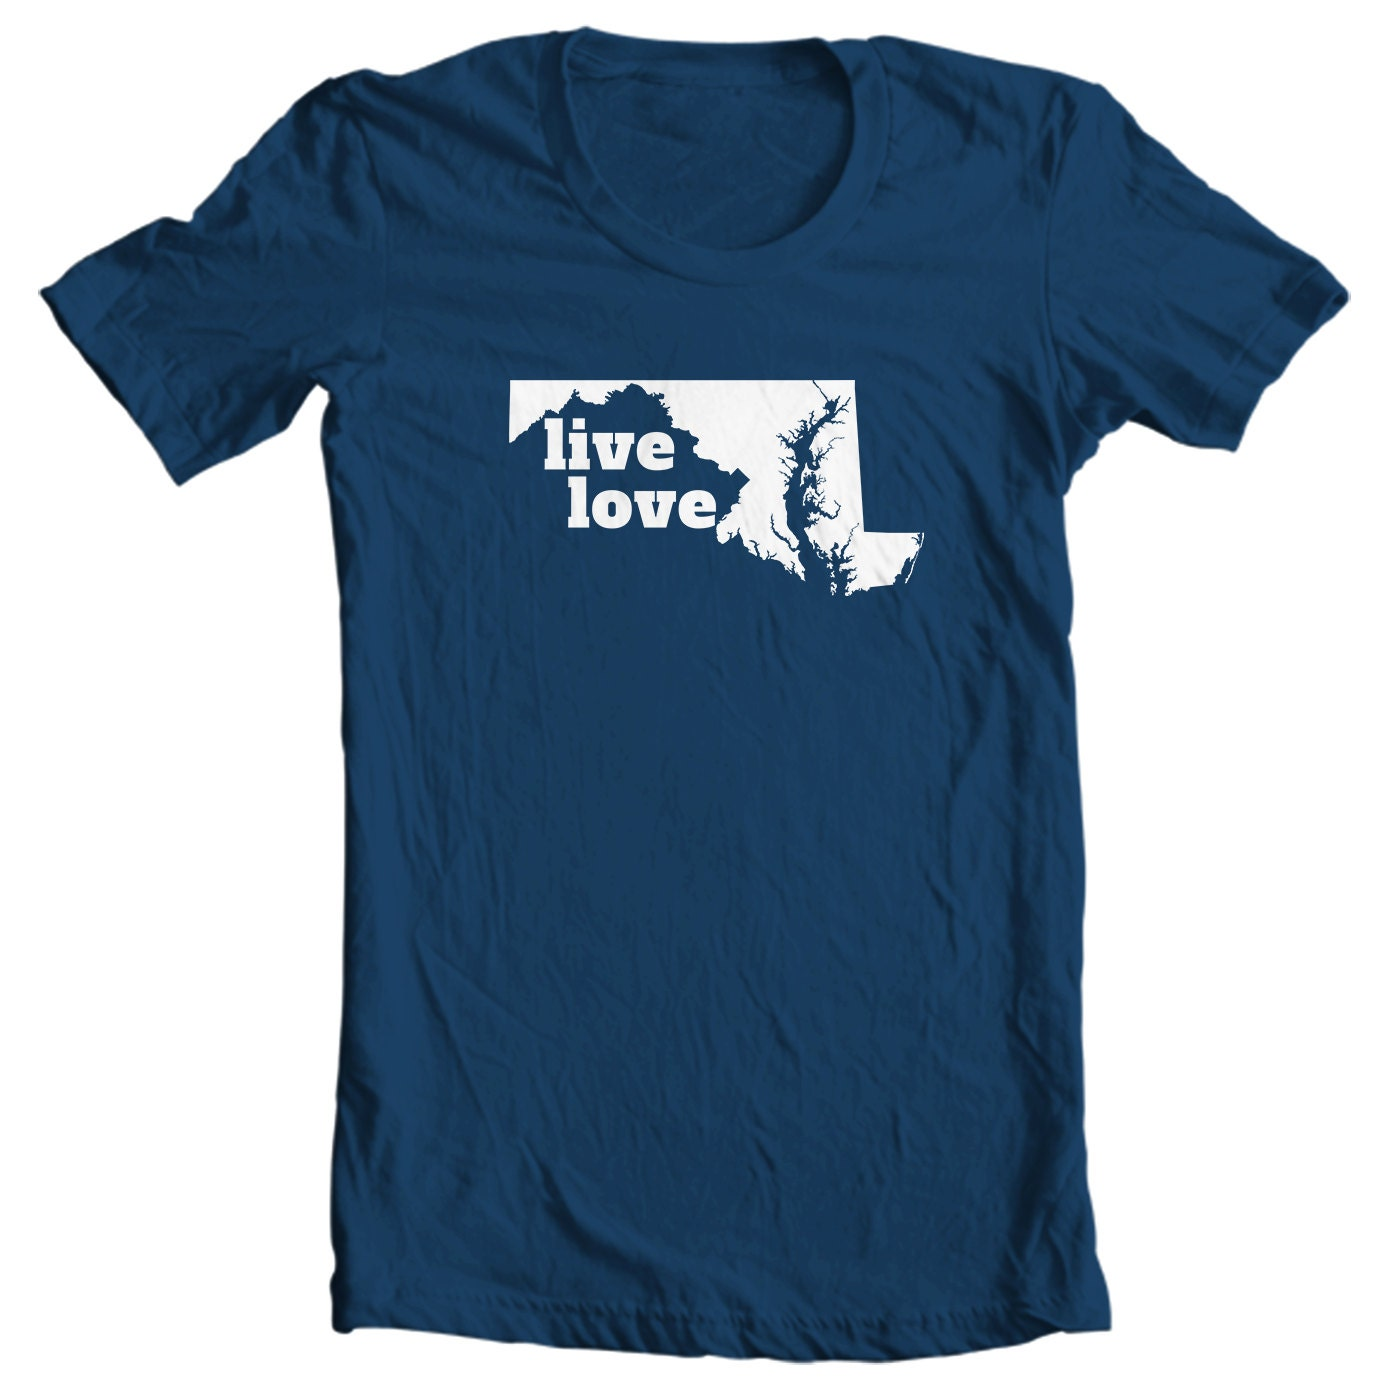 Maryland T-shirt - Live Love Maryland - My State Maryland T-shirt